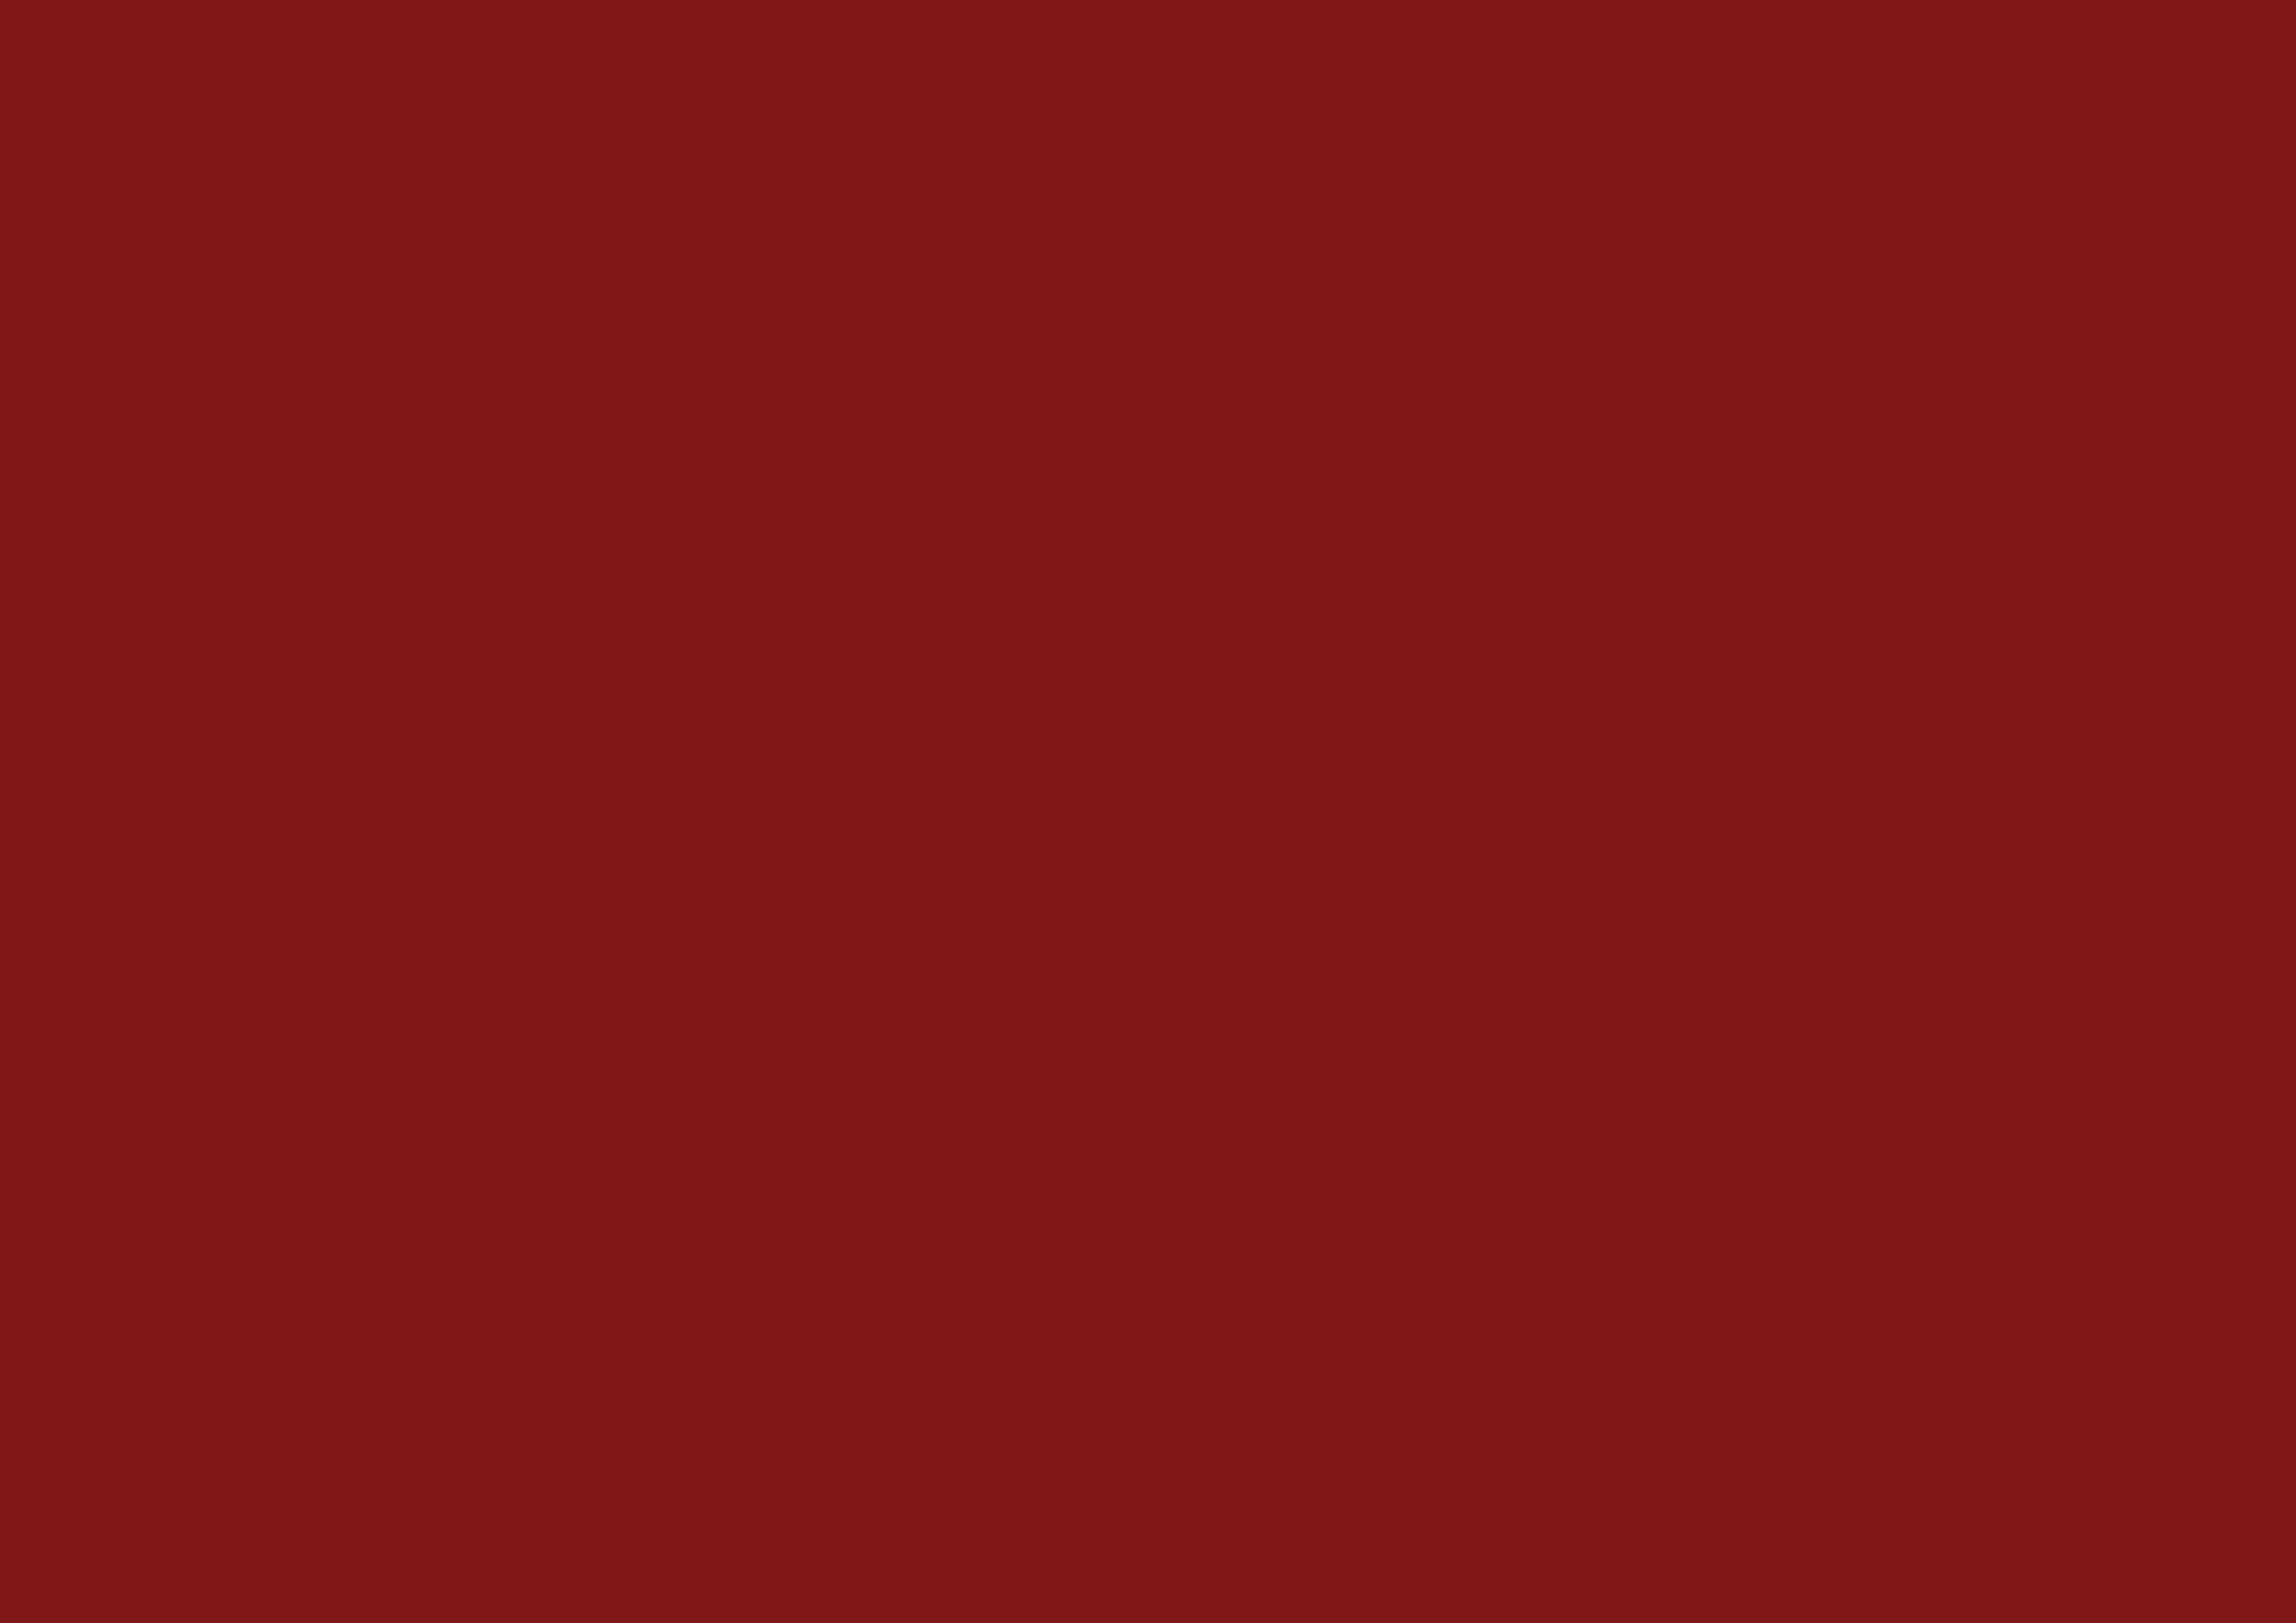 3508x2480 Falu Red Solid Color Background